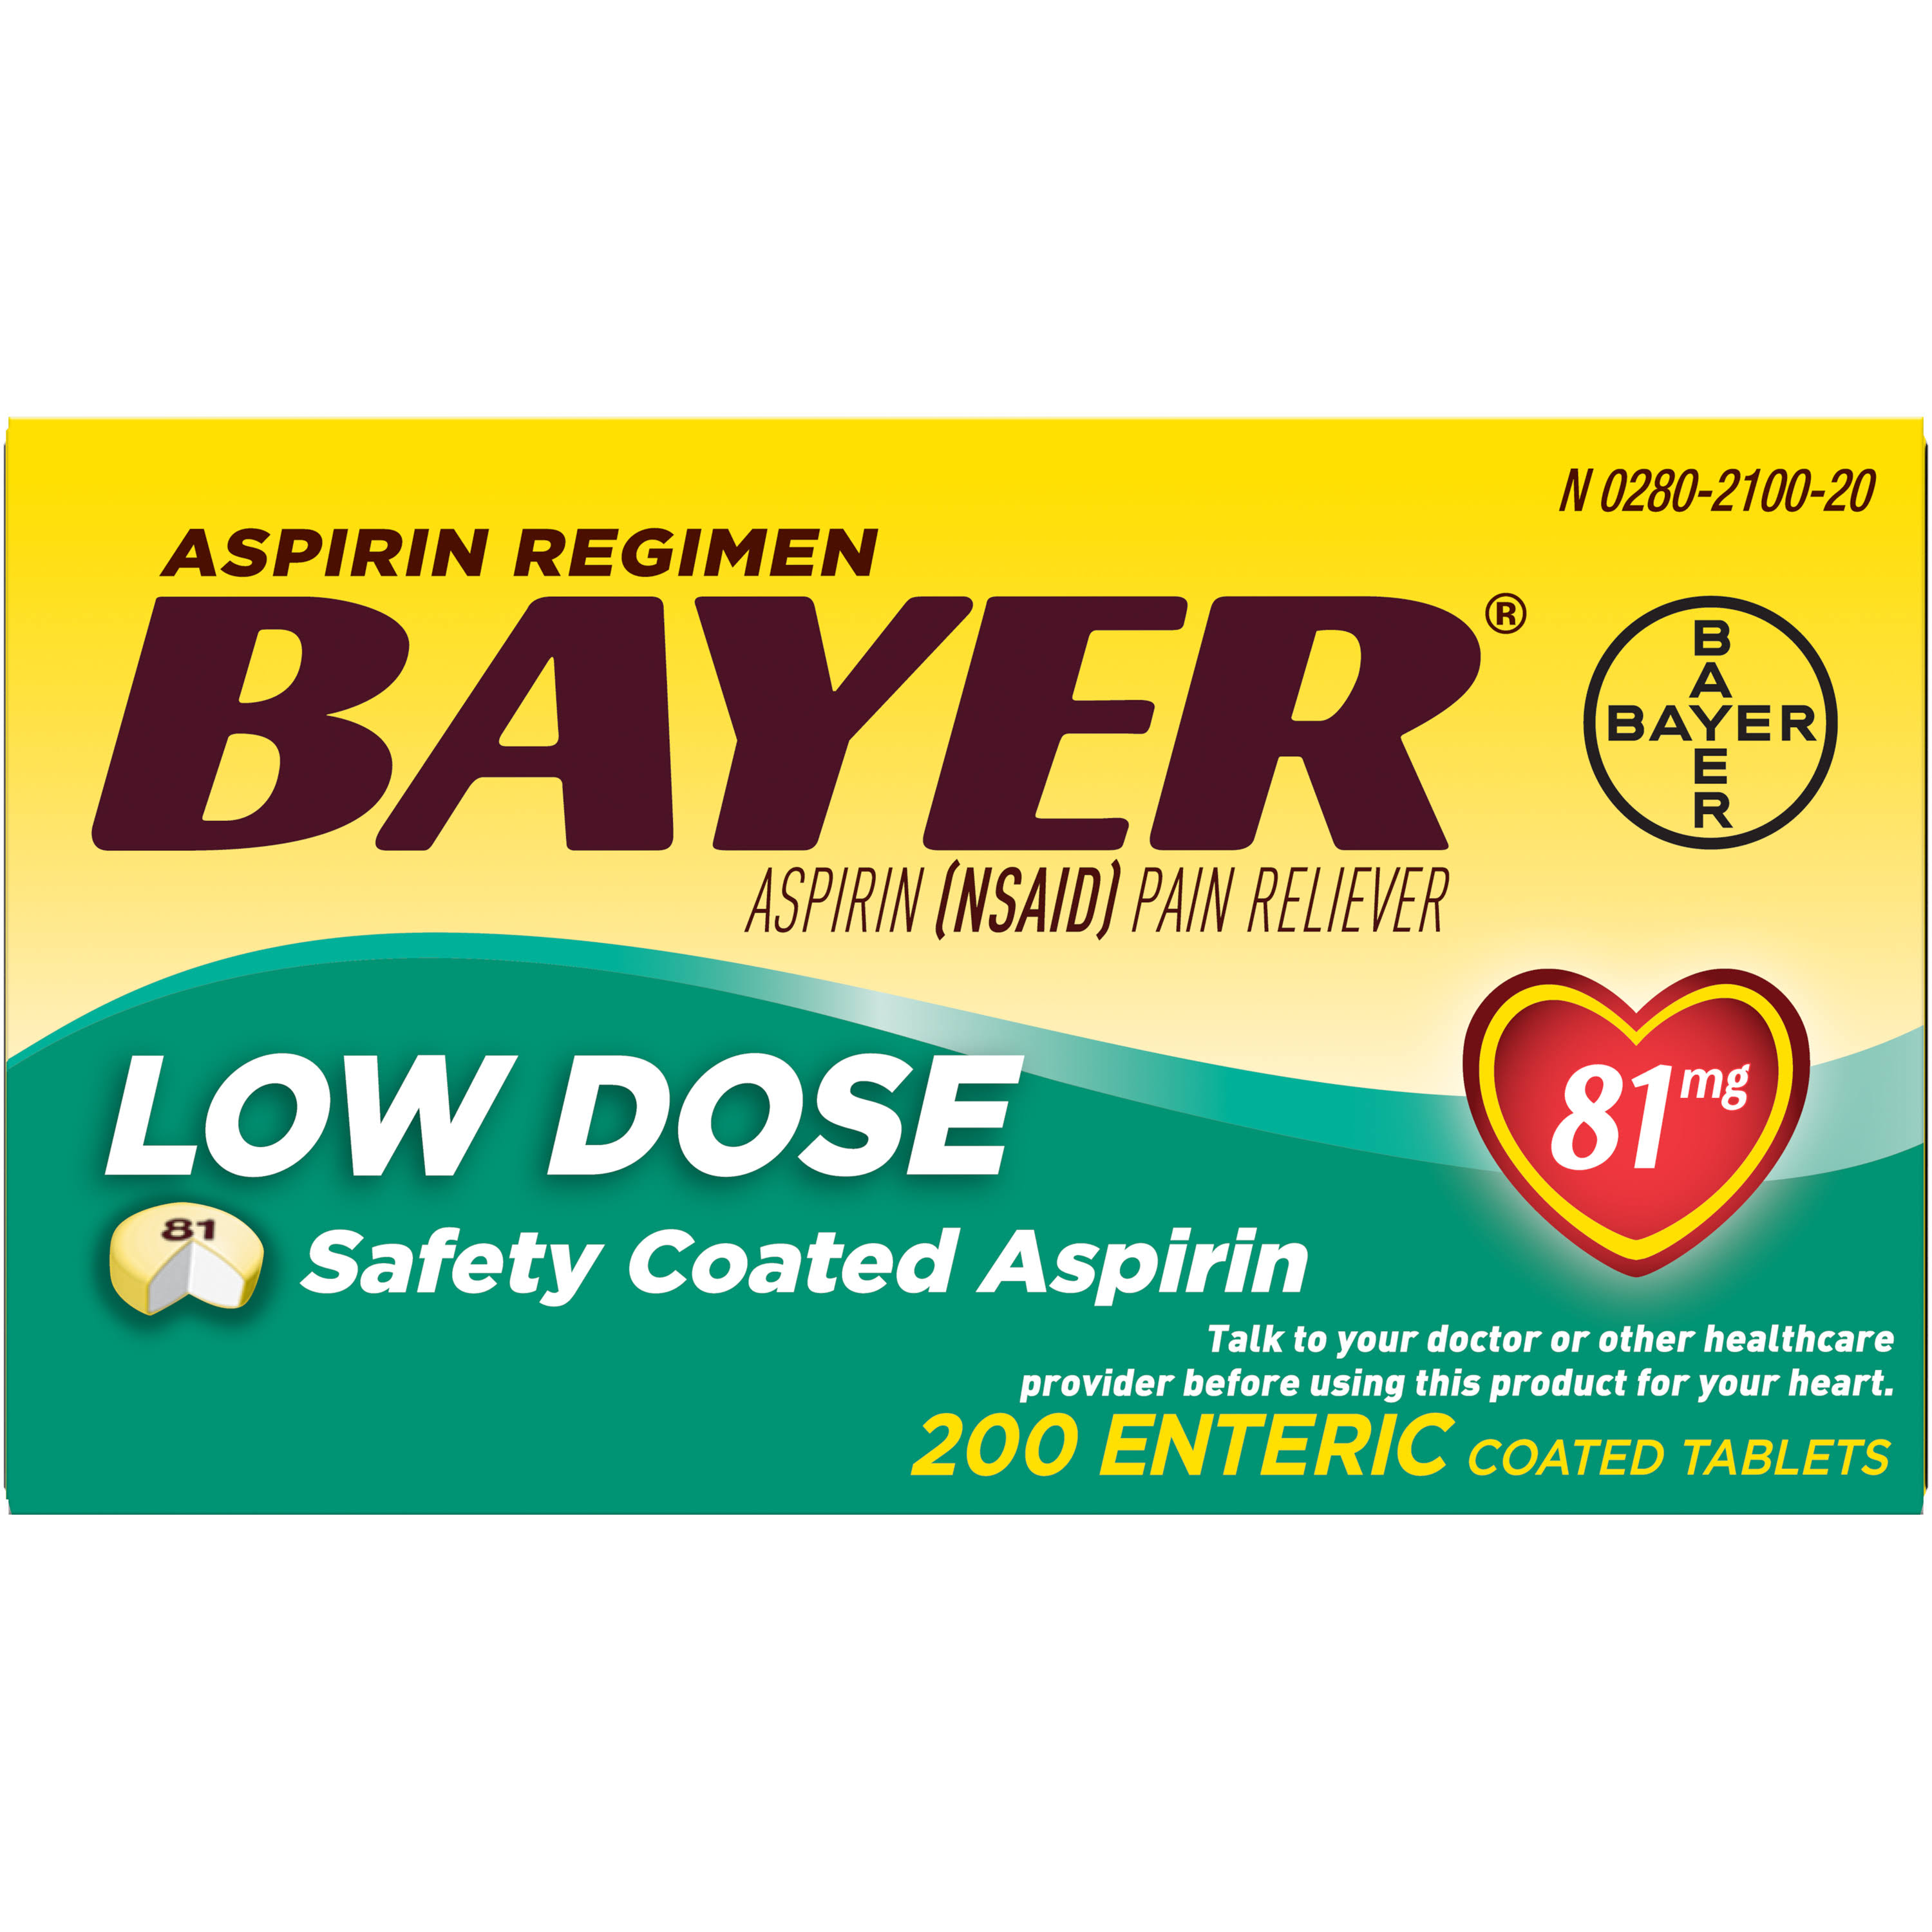 Bayer Aspirin Regimen Enteric Coated Tablets - 81mg, 200pk